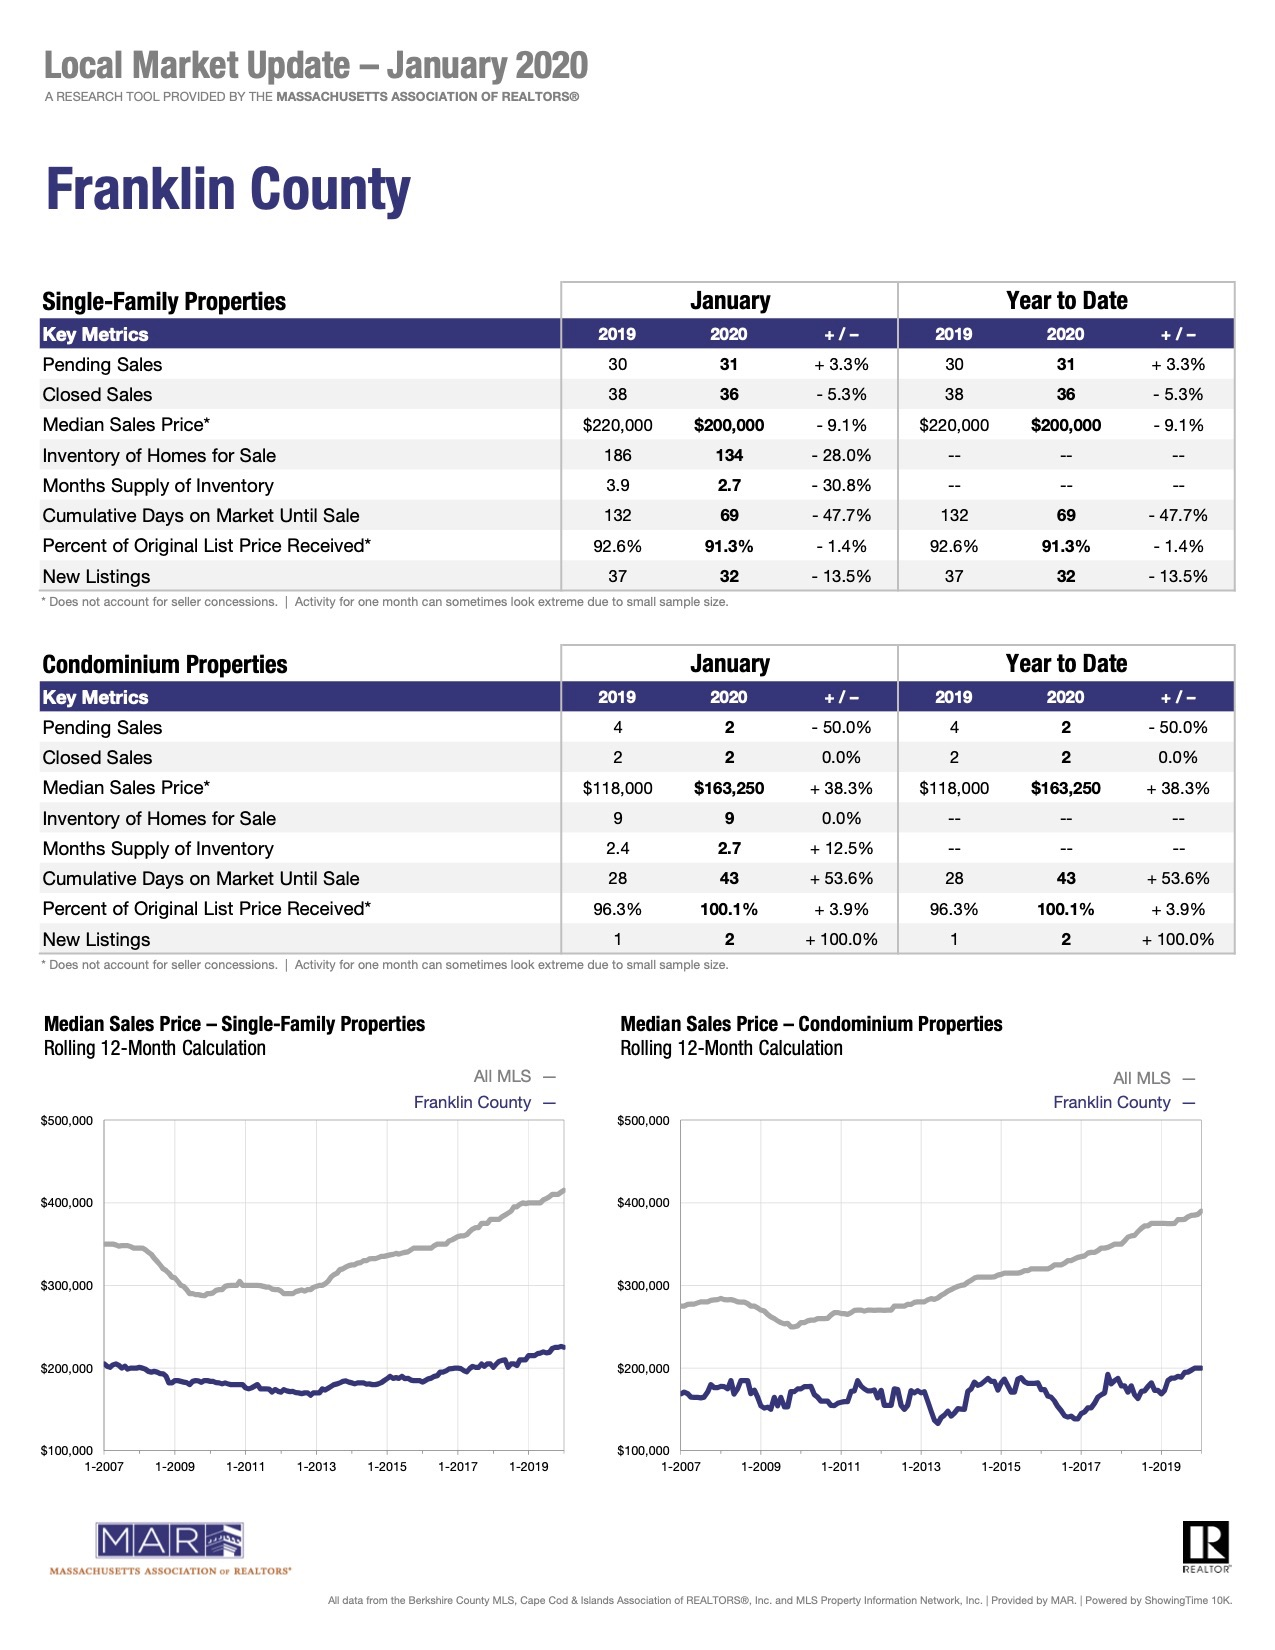 Franklin County Local Market Update January 2020